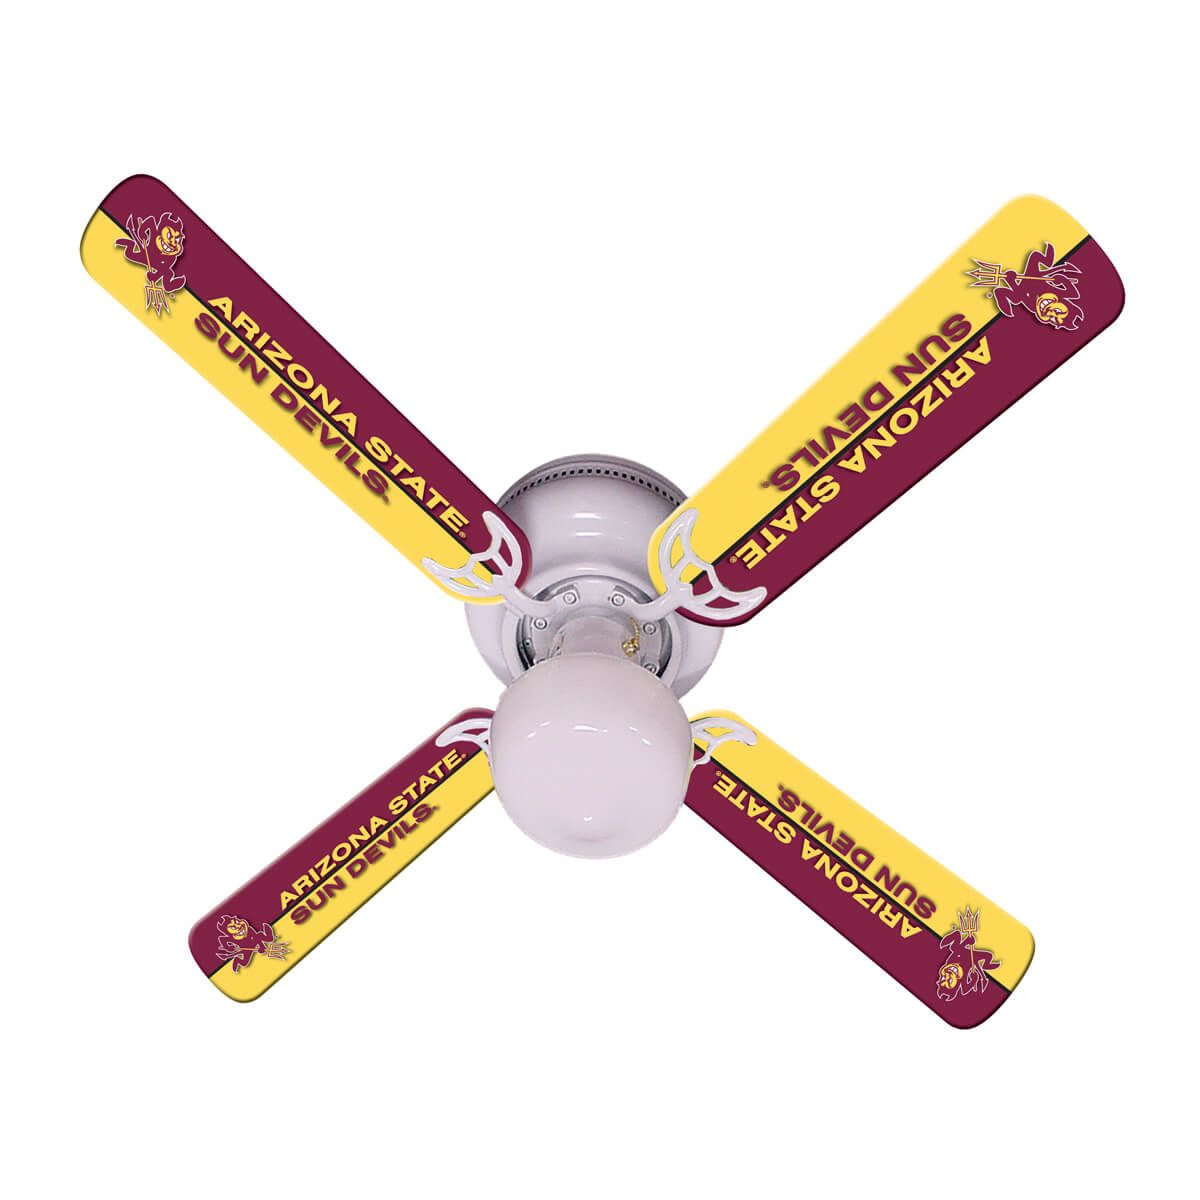 204 99 Brand Wave 7 Measures 12 5 From Ceiling To Bottom Of Fan 120 Volt 3 Speed Reversible Motor Dual Capacitor Speed Control Forward Arizona State